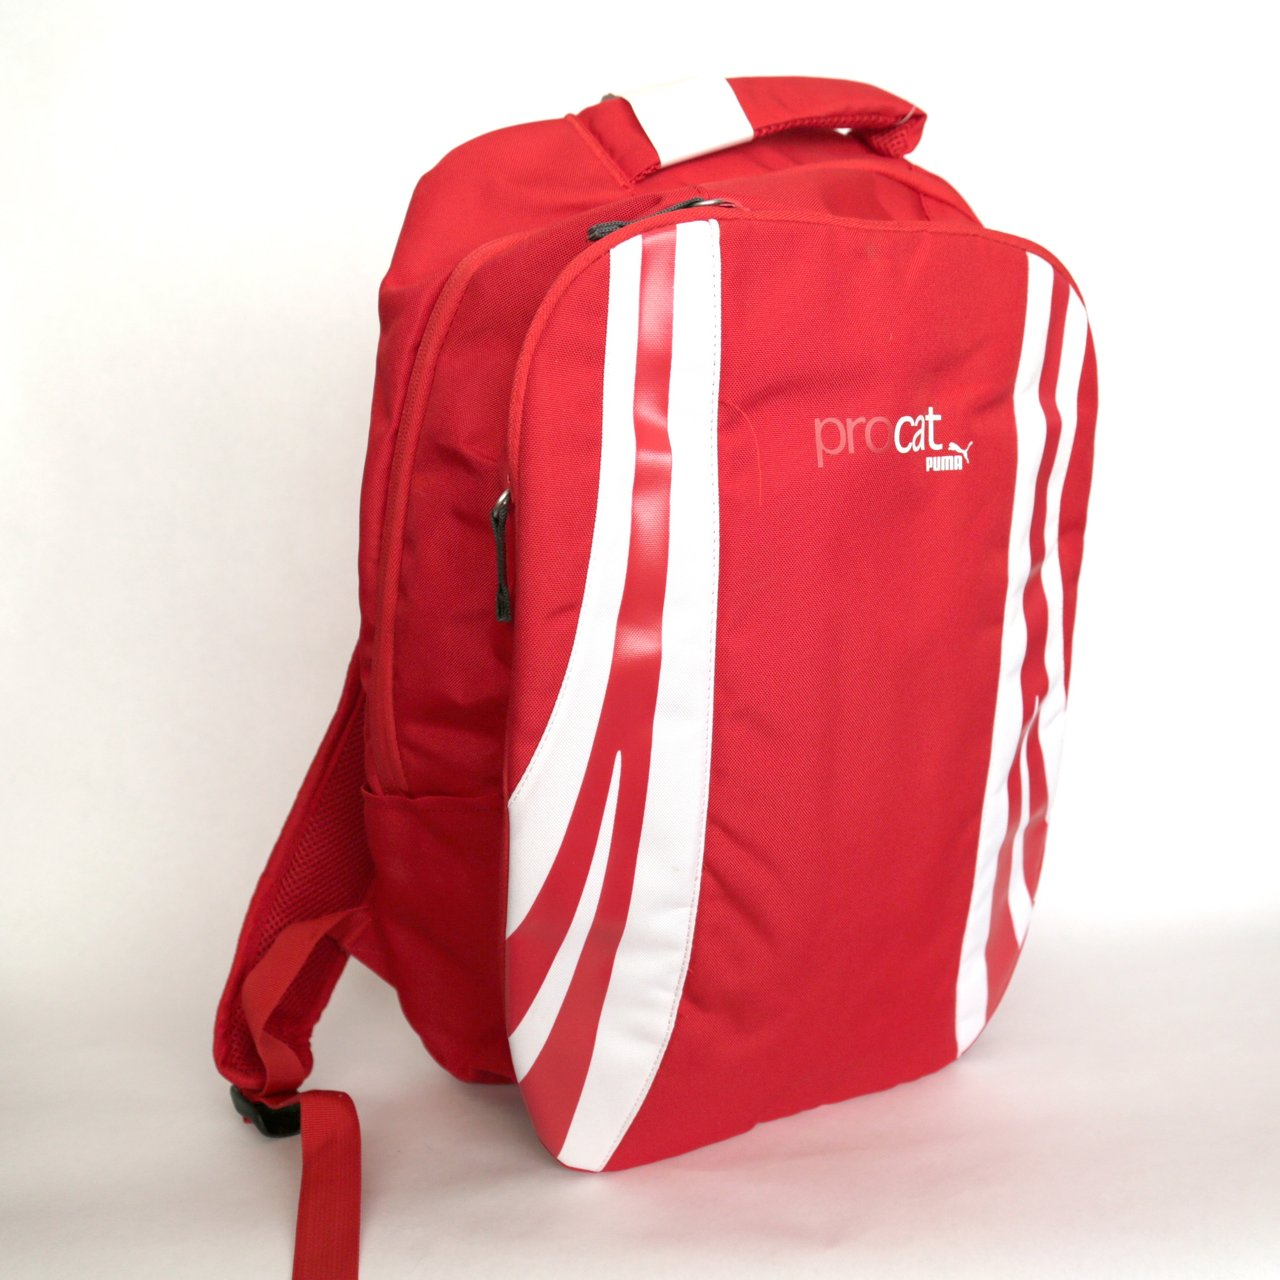 d84f266aed NWT red puma pro cat backpack. available for pick up from or - Depop